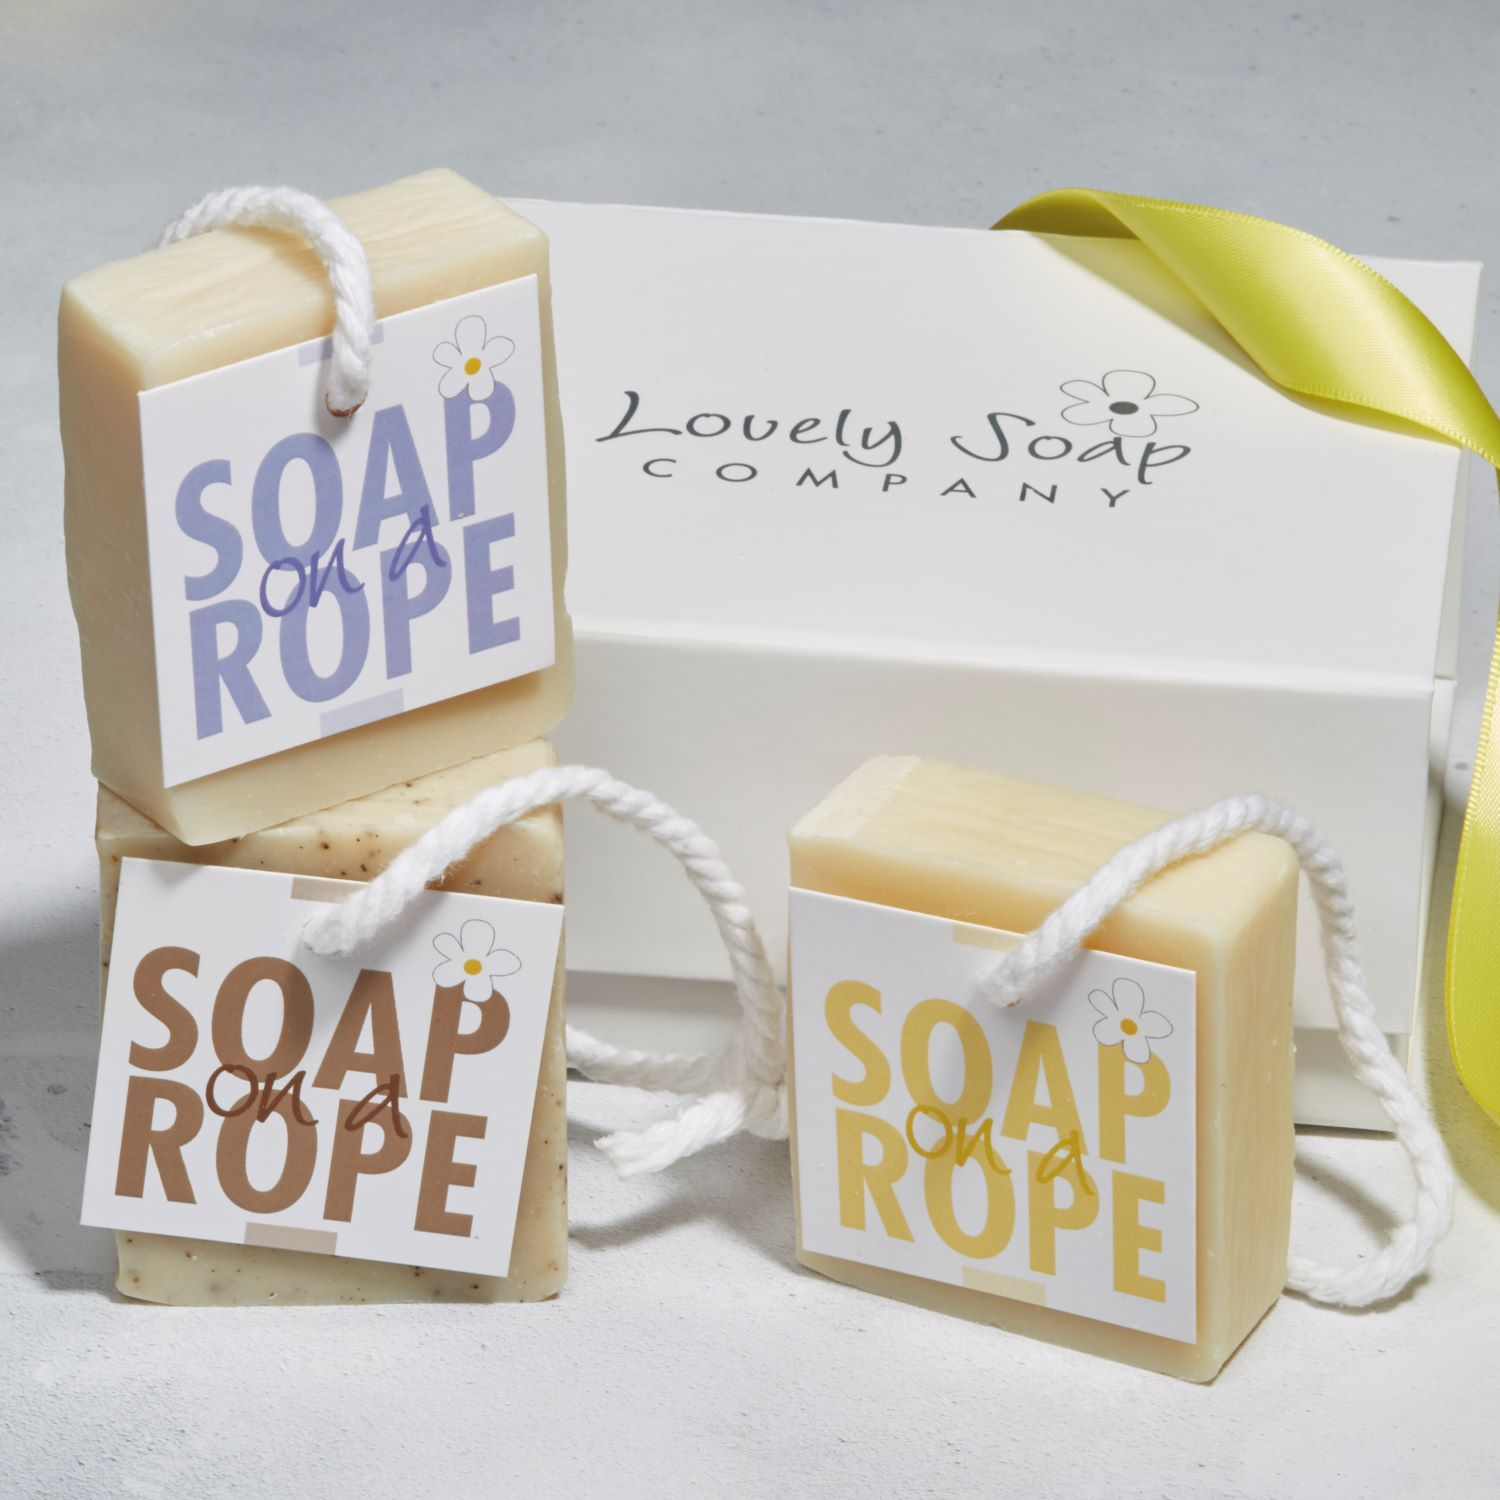 Soap on a rope gift set natural handmade soaps by Lovely Soap Co